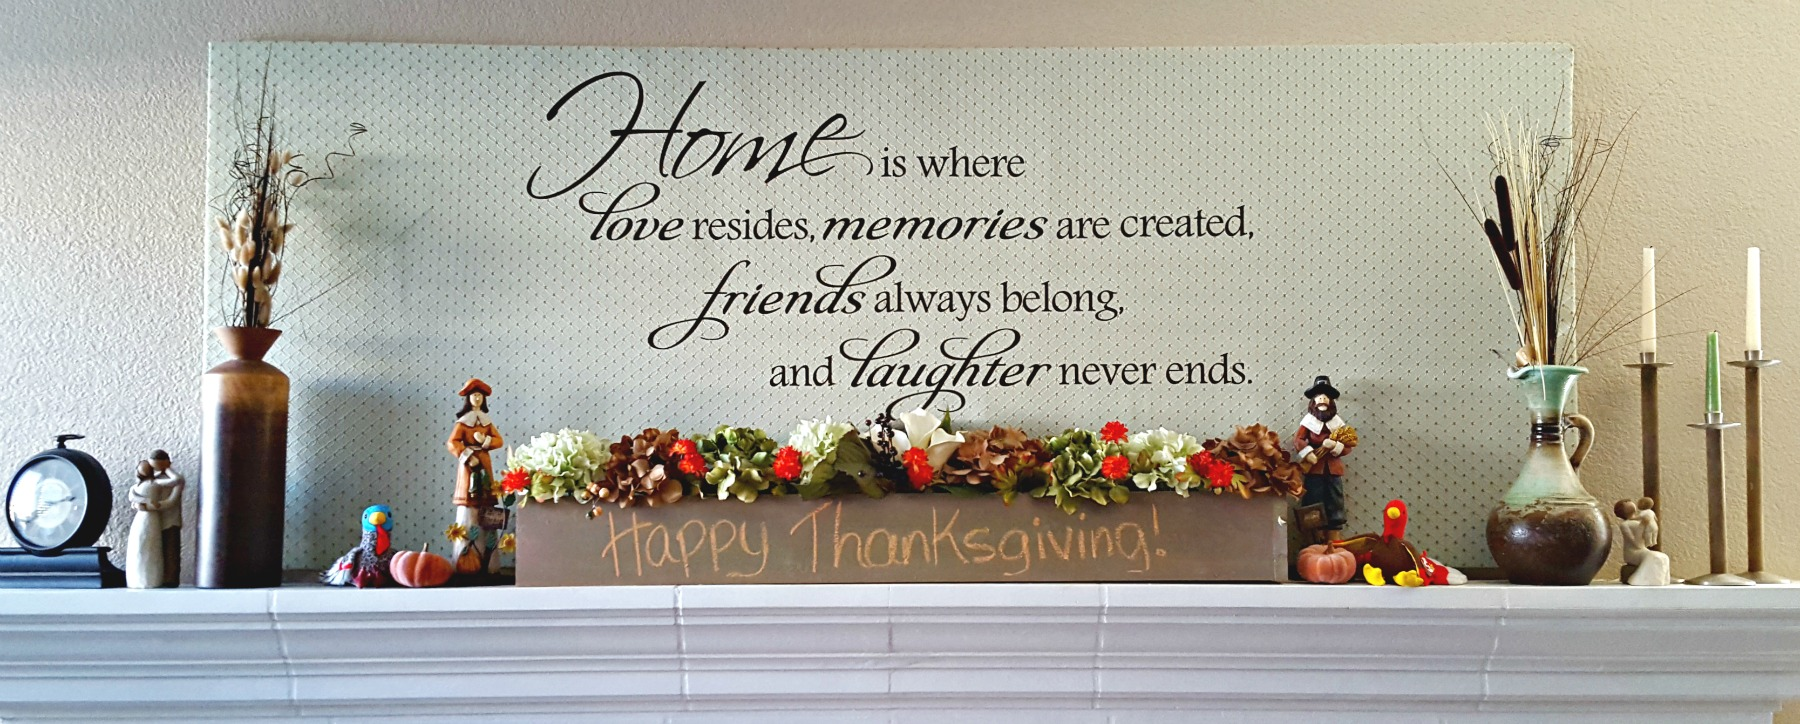 DIY mantel makeover thanksgiving